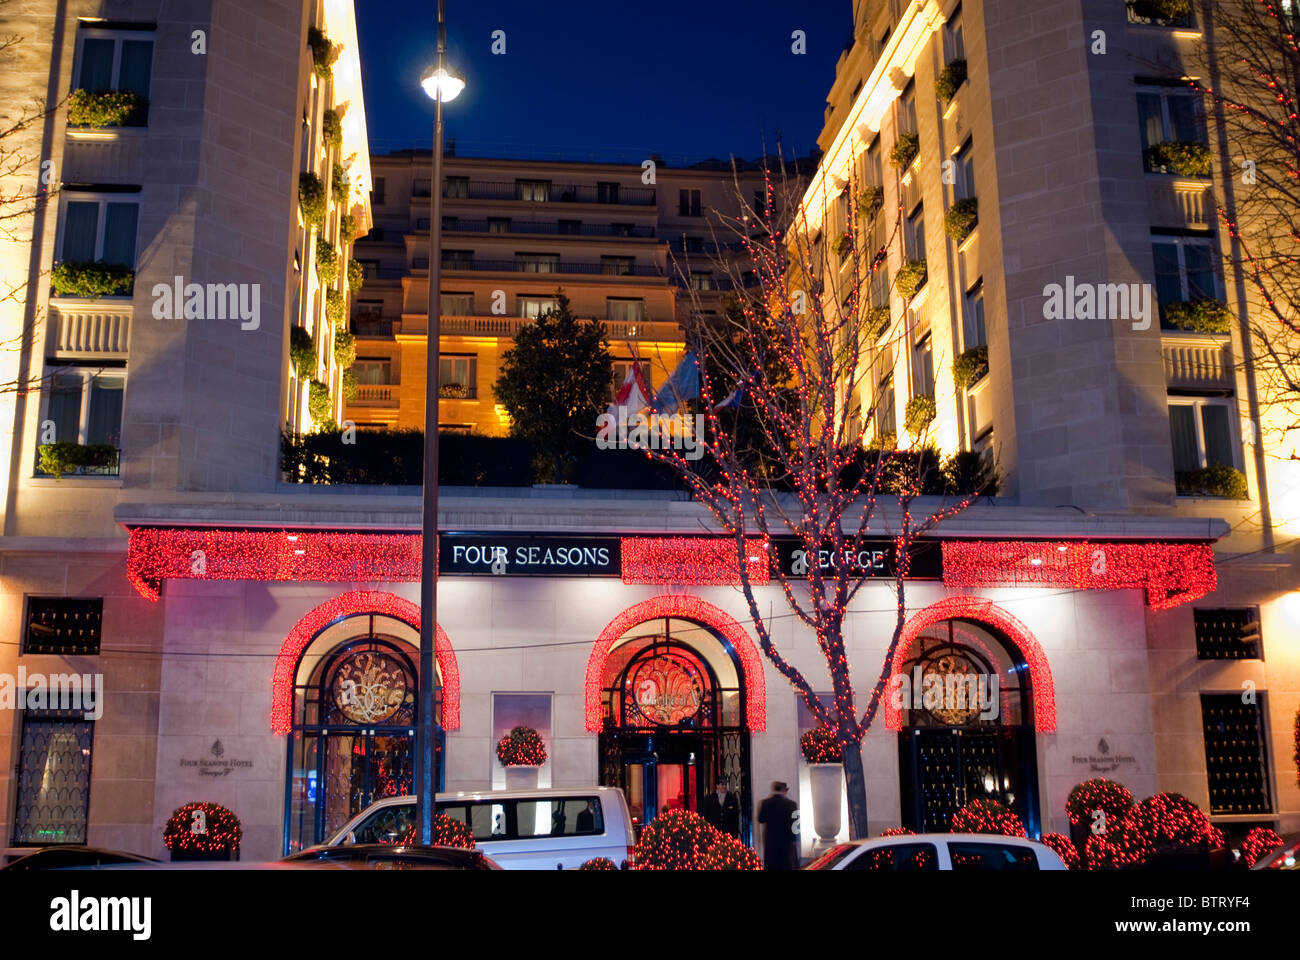 Paris France Luxury Hotel  George V   FOur Seasons  Front Building with Christmas Lighting at Night & Paris France Luxury Hotel